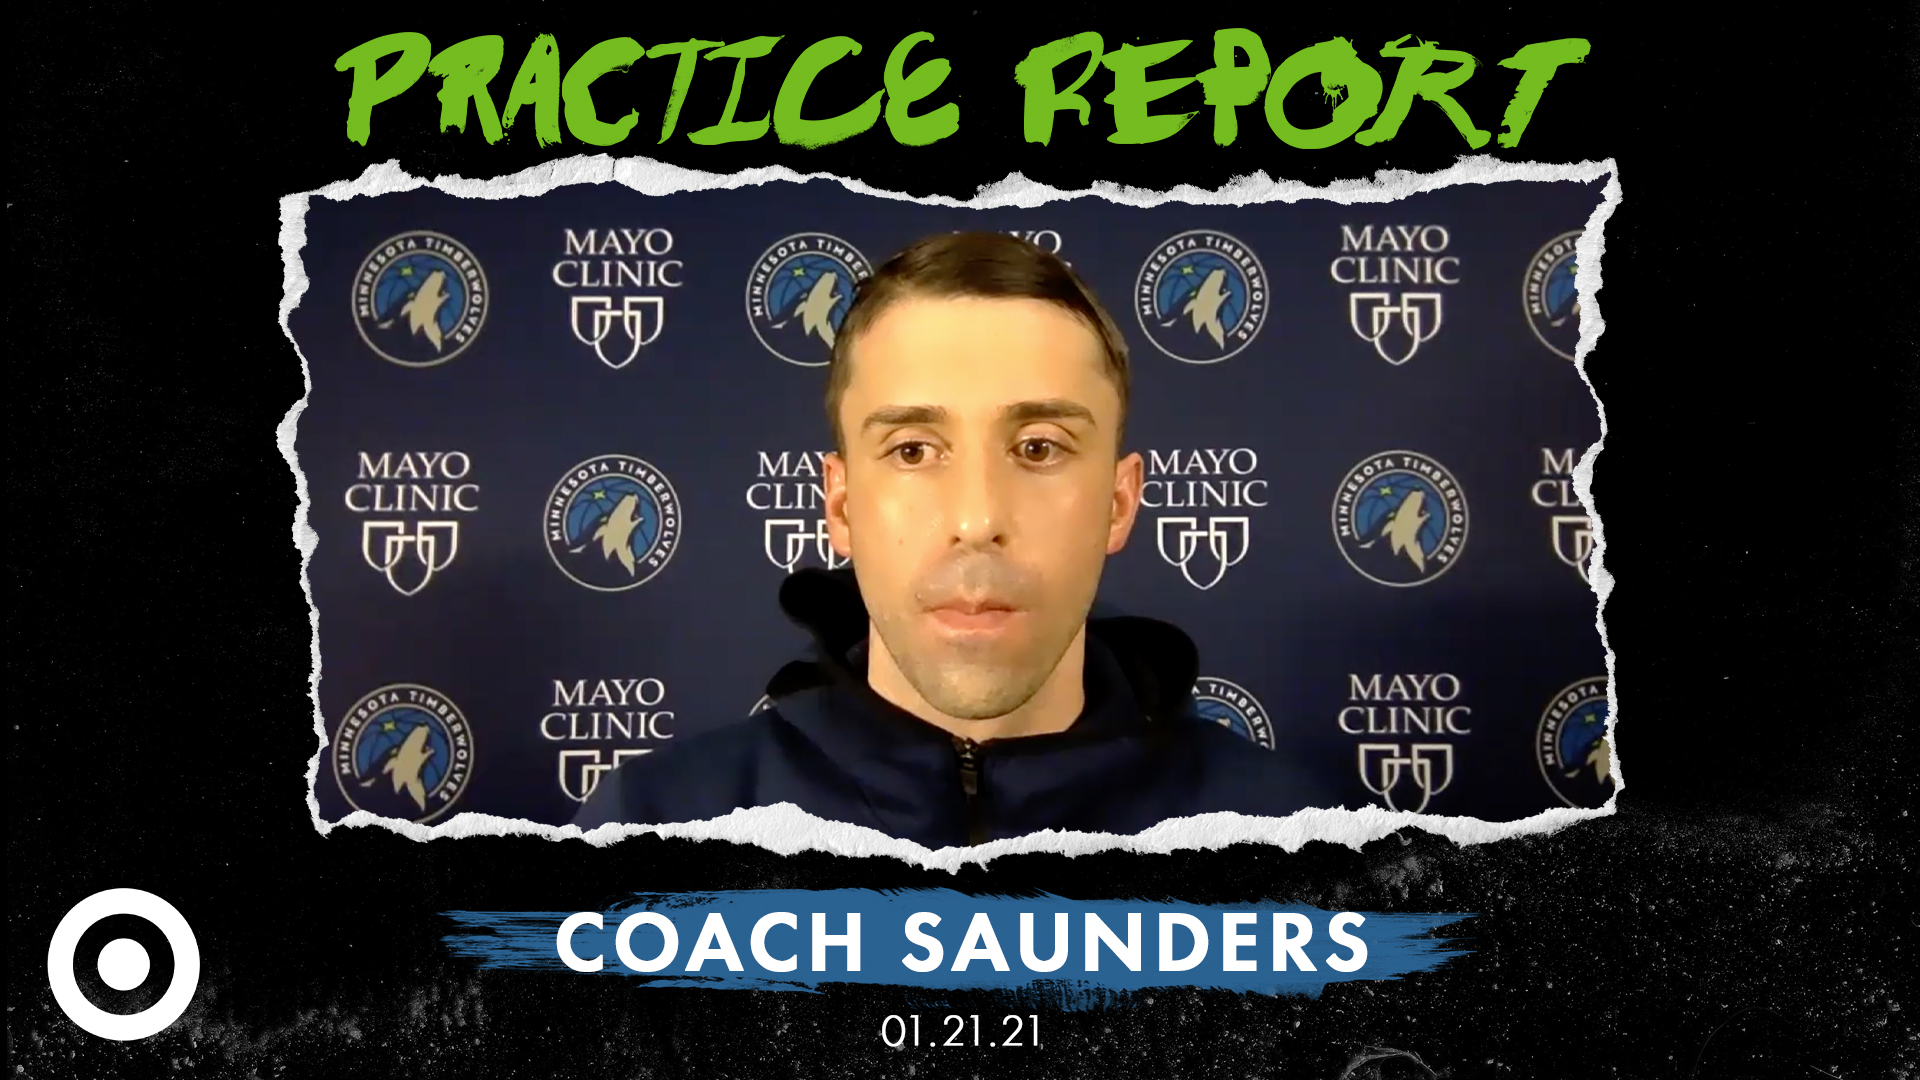 Coach Saunders Practice Report - January 21, 2021